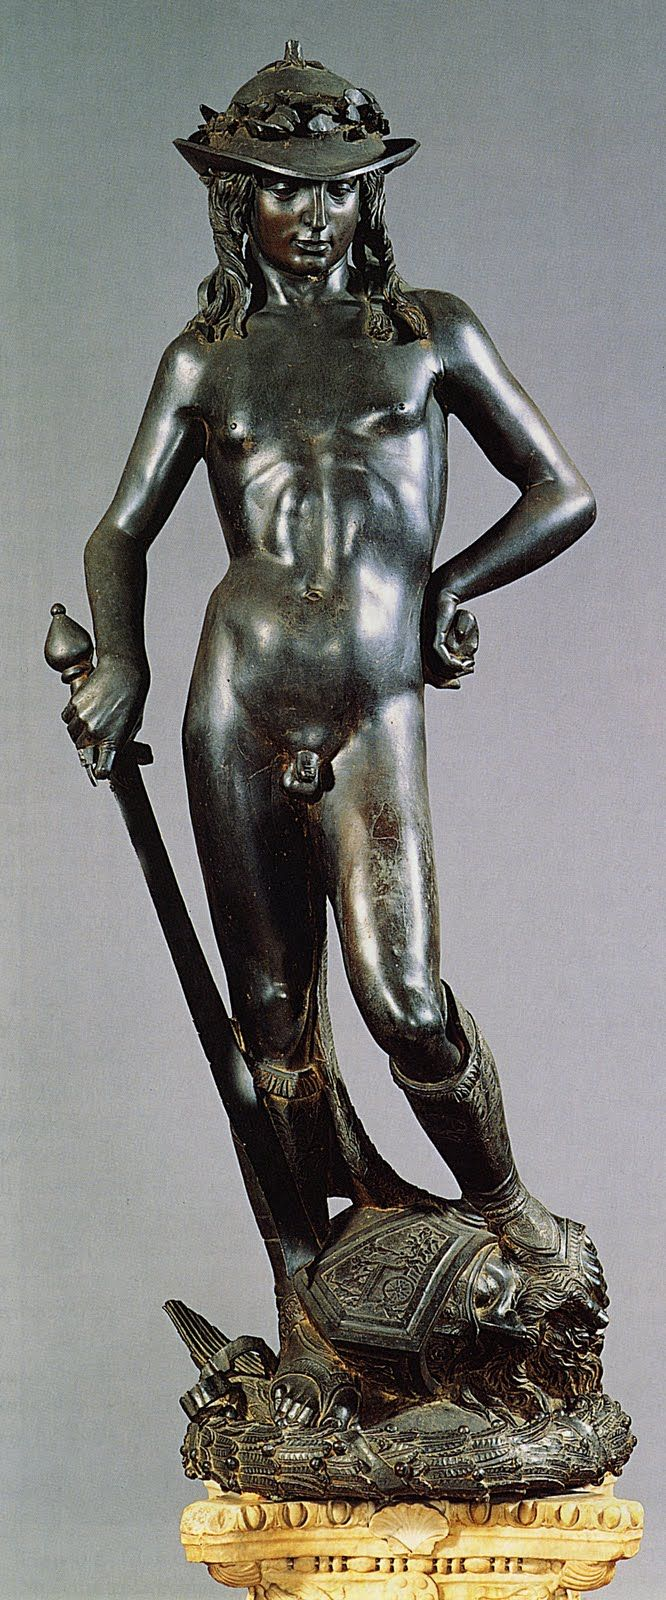 Donatello, 1430-1432, David, statue en bronze, 158 cm de hauteur, Musée National du Bargello, Florence